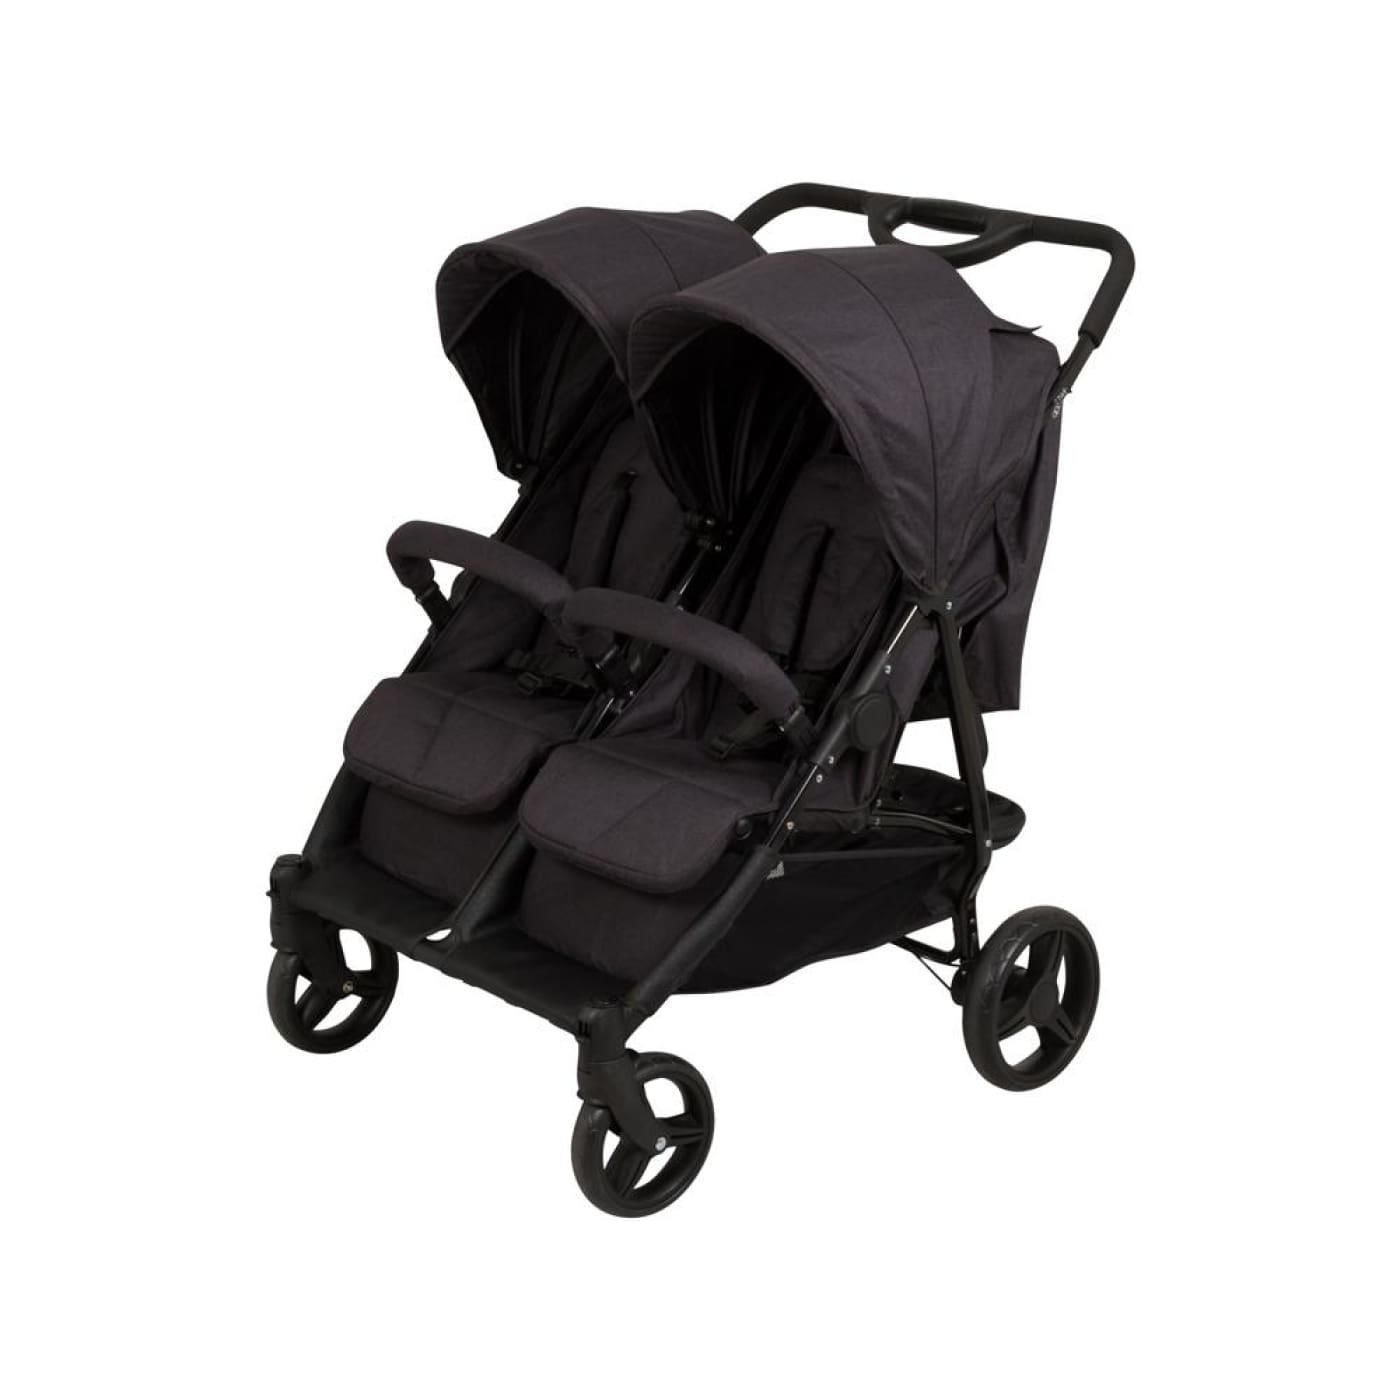 Childcare Dupo Twin Stroller - Cinder - Cinder - PRAMS & STROLLERS - 4 WHEEL CONV TO 2/TSC